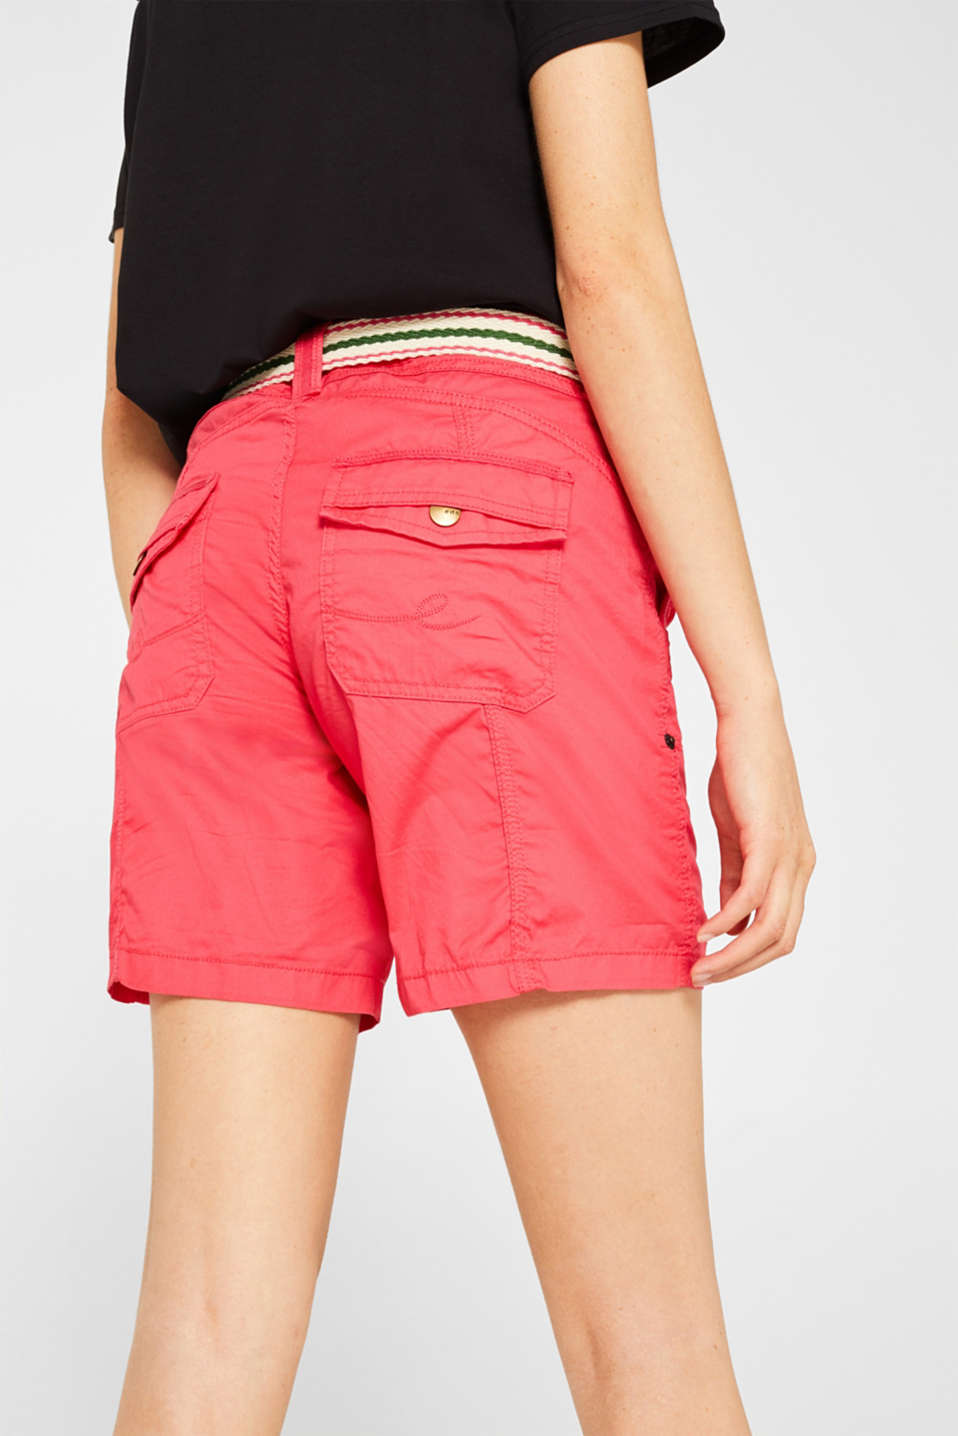 PLAY shorts with a belt, 100% cotton, BERRY RED, detail image number 6